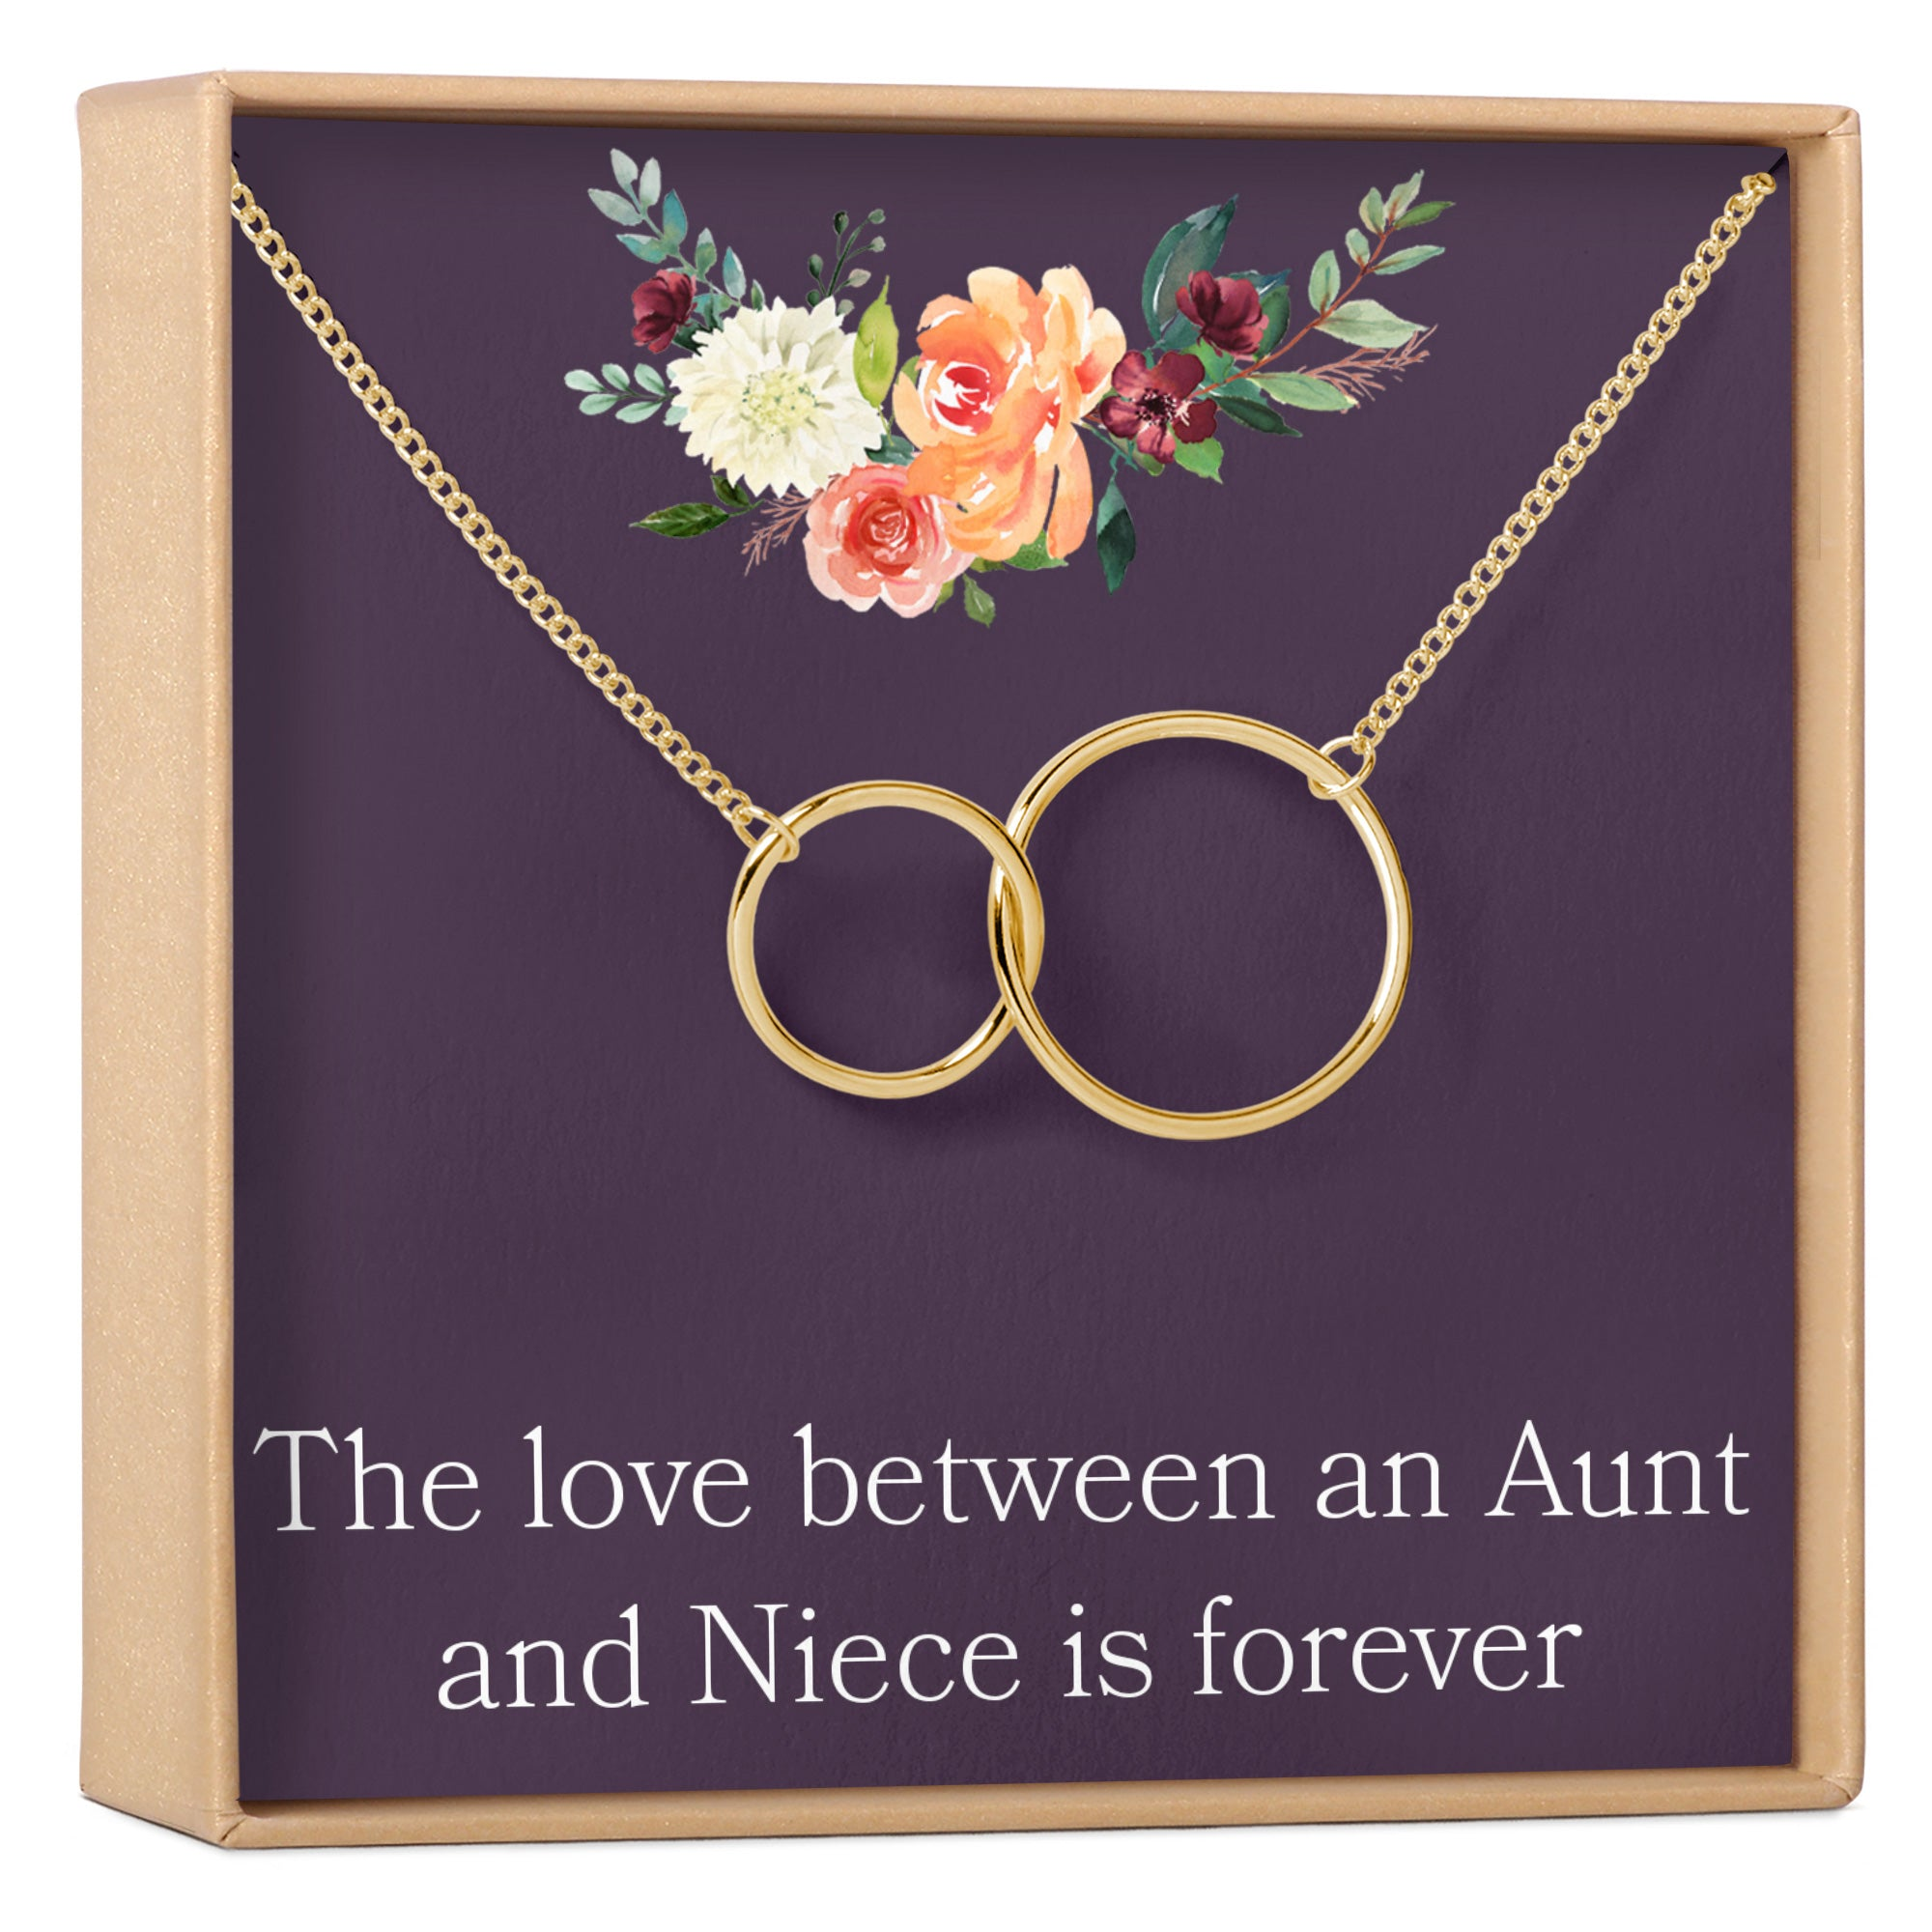 Aunt-Niece Jewelry Aunt-Niece Gift Aunt Necklace birthstone necklace,mother/'s day GIFT Aunt-Niece Quotes Aunt-Niece Necklace